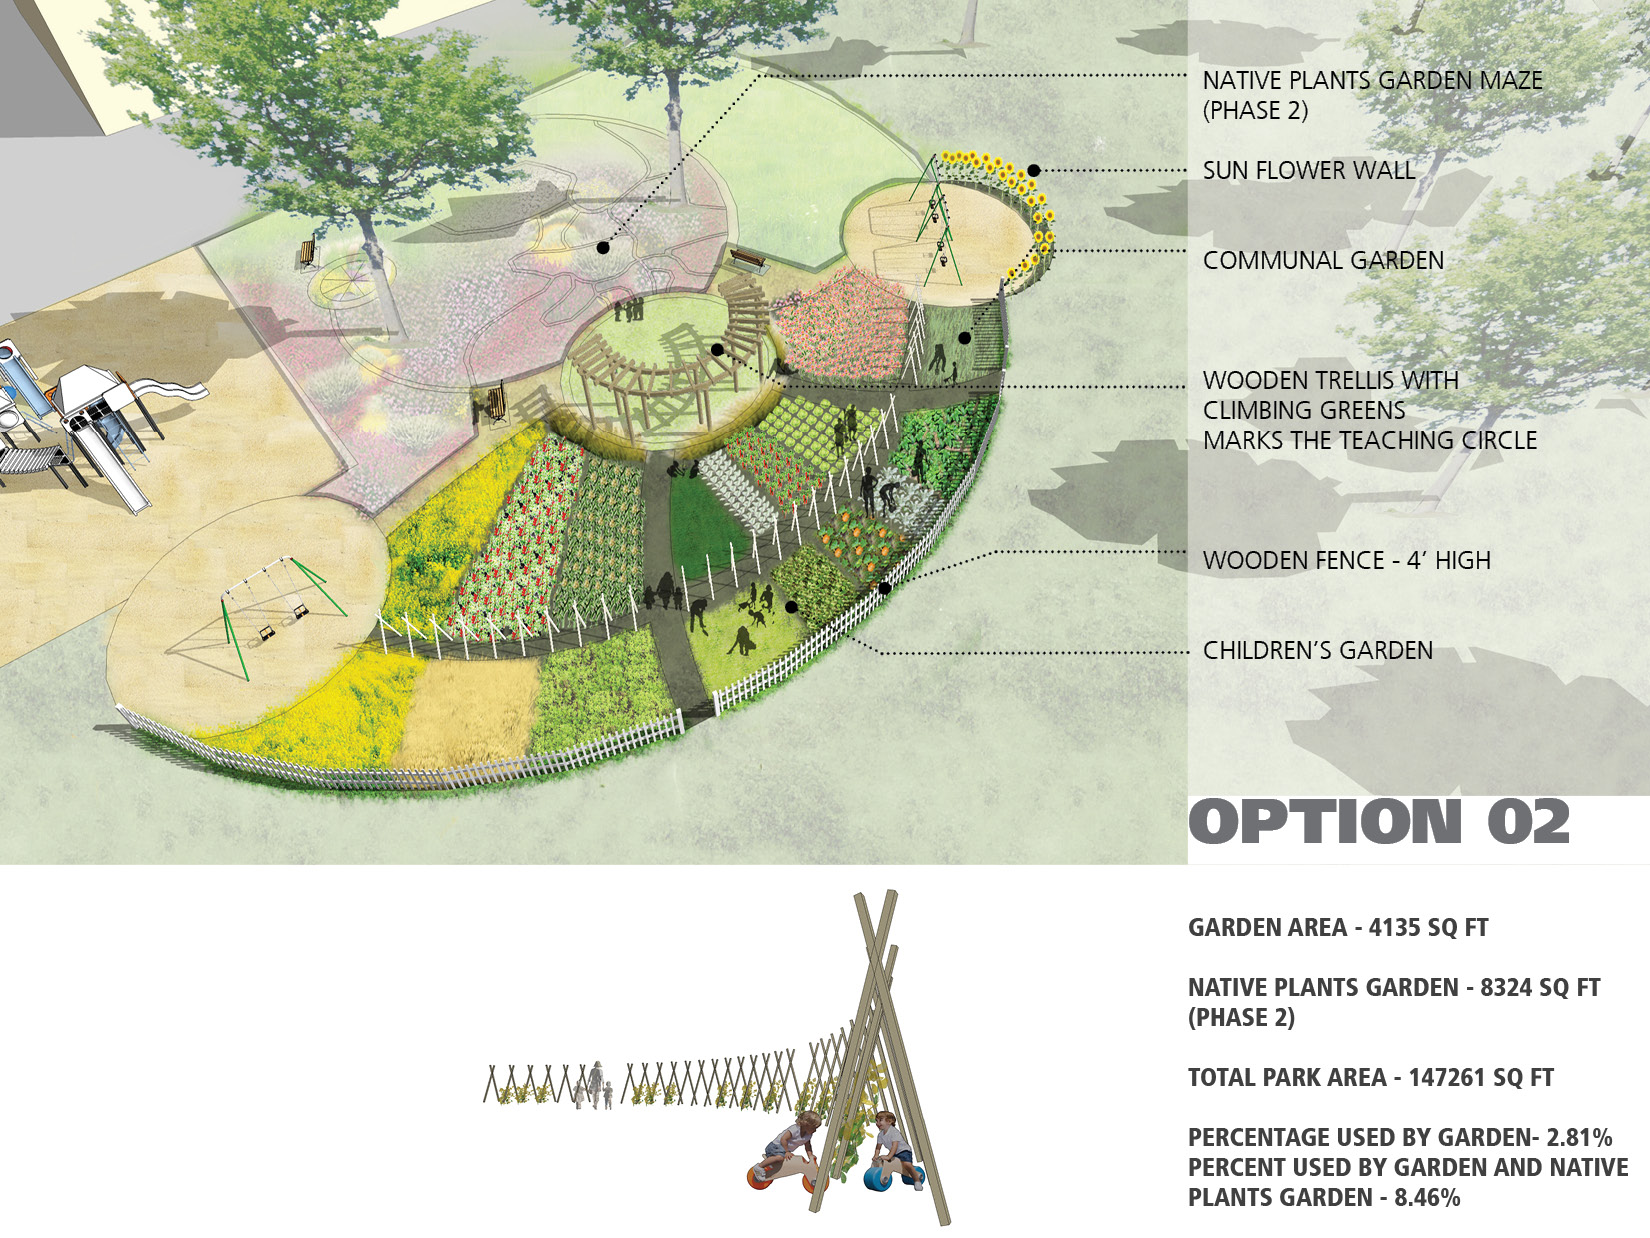 Garden designs dallington pollinators community garden for Garden layouts designs